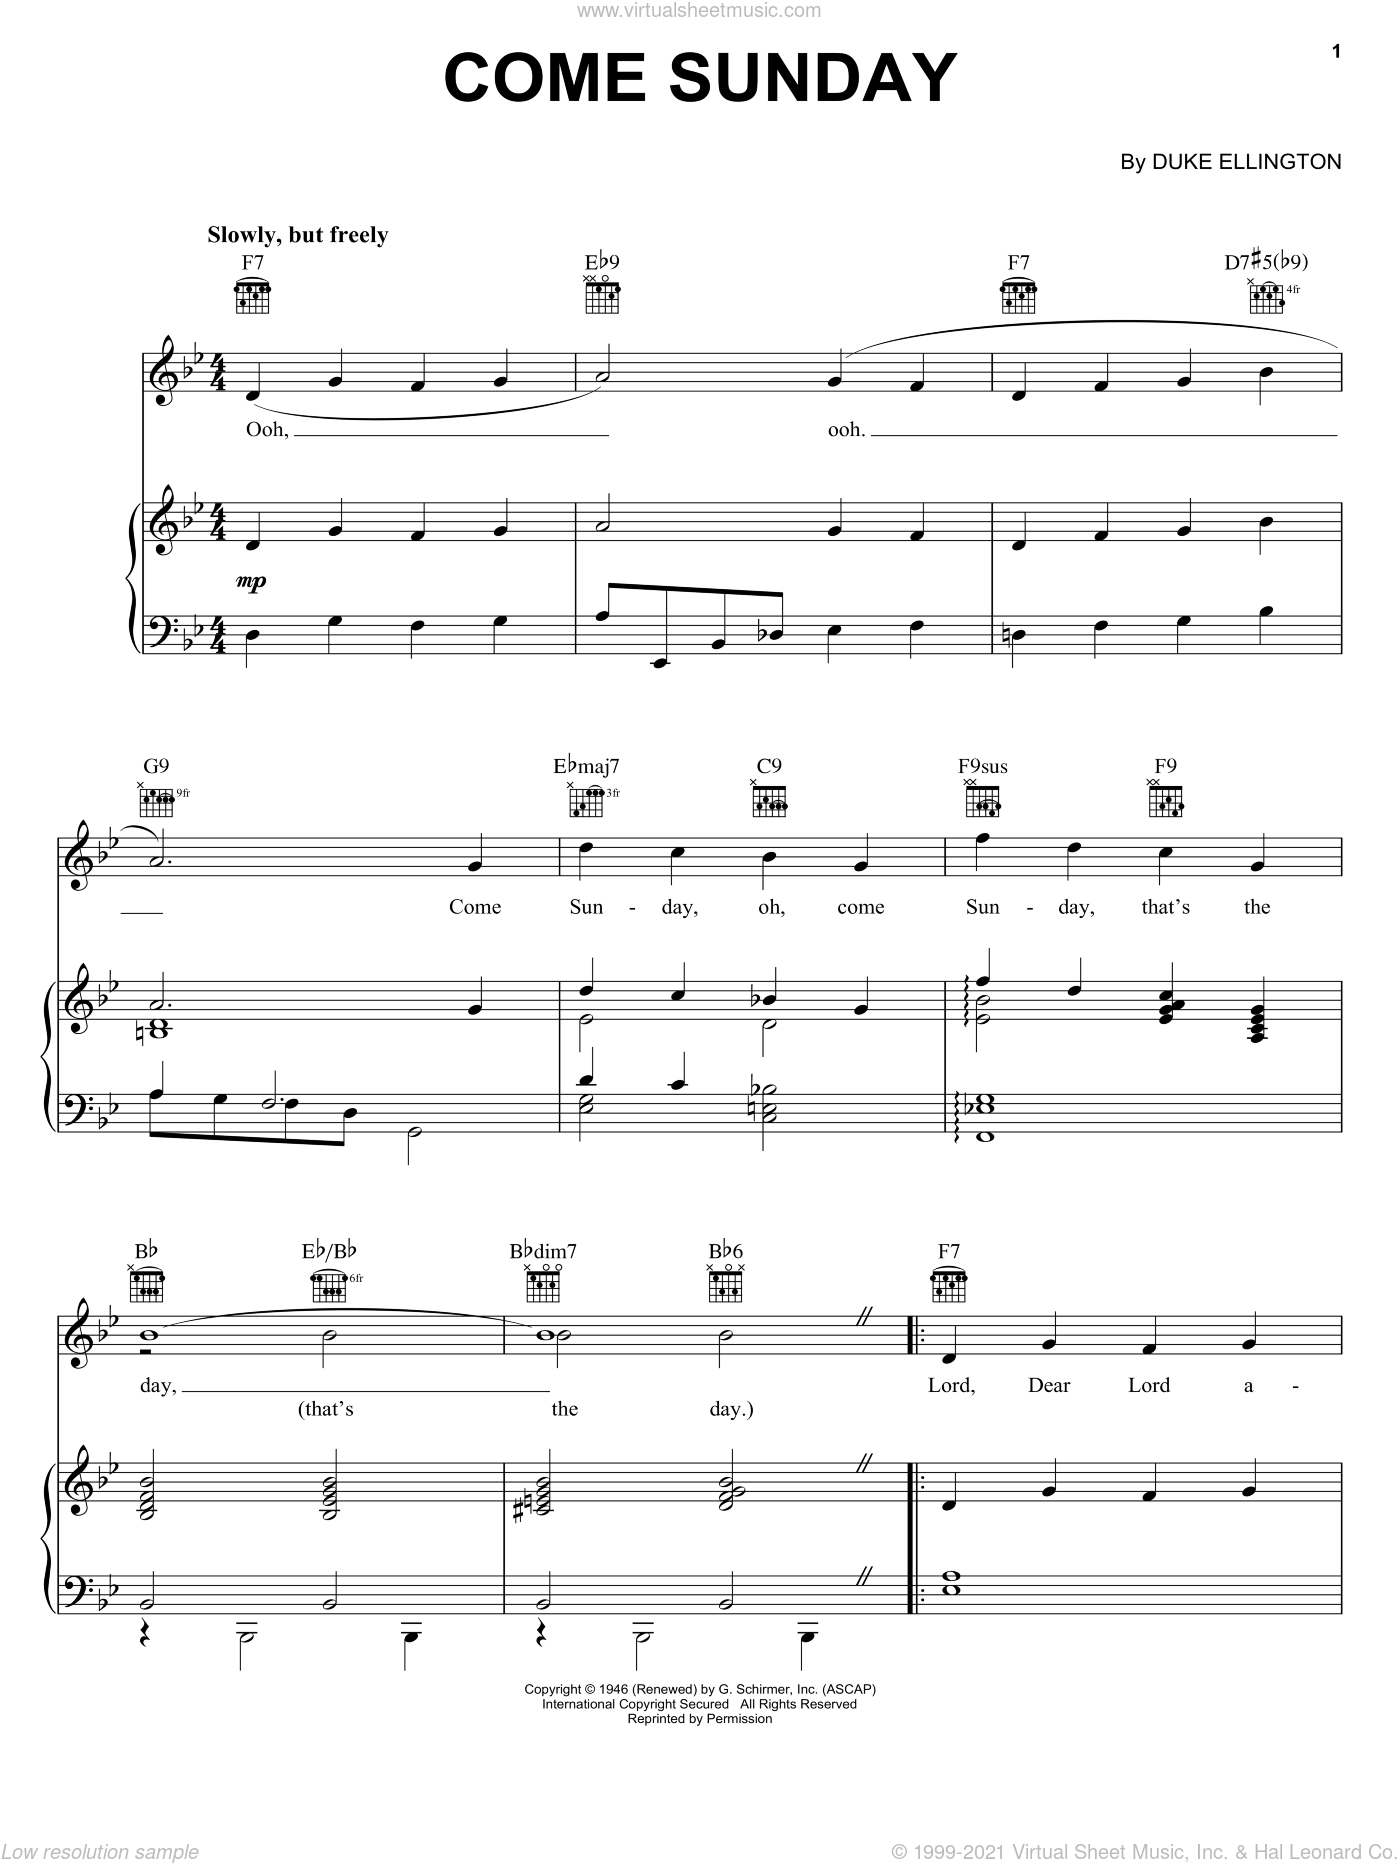 Come Sunday sheet music for voice, piano or guitar by Duke Ellington, intermediate skill level